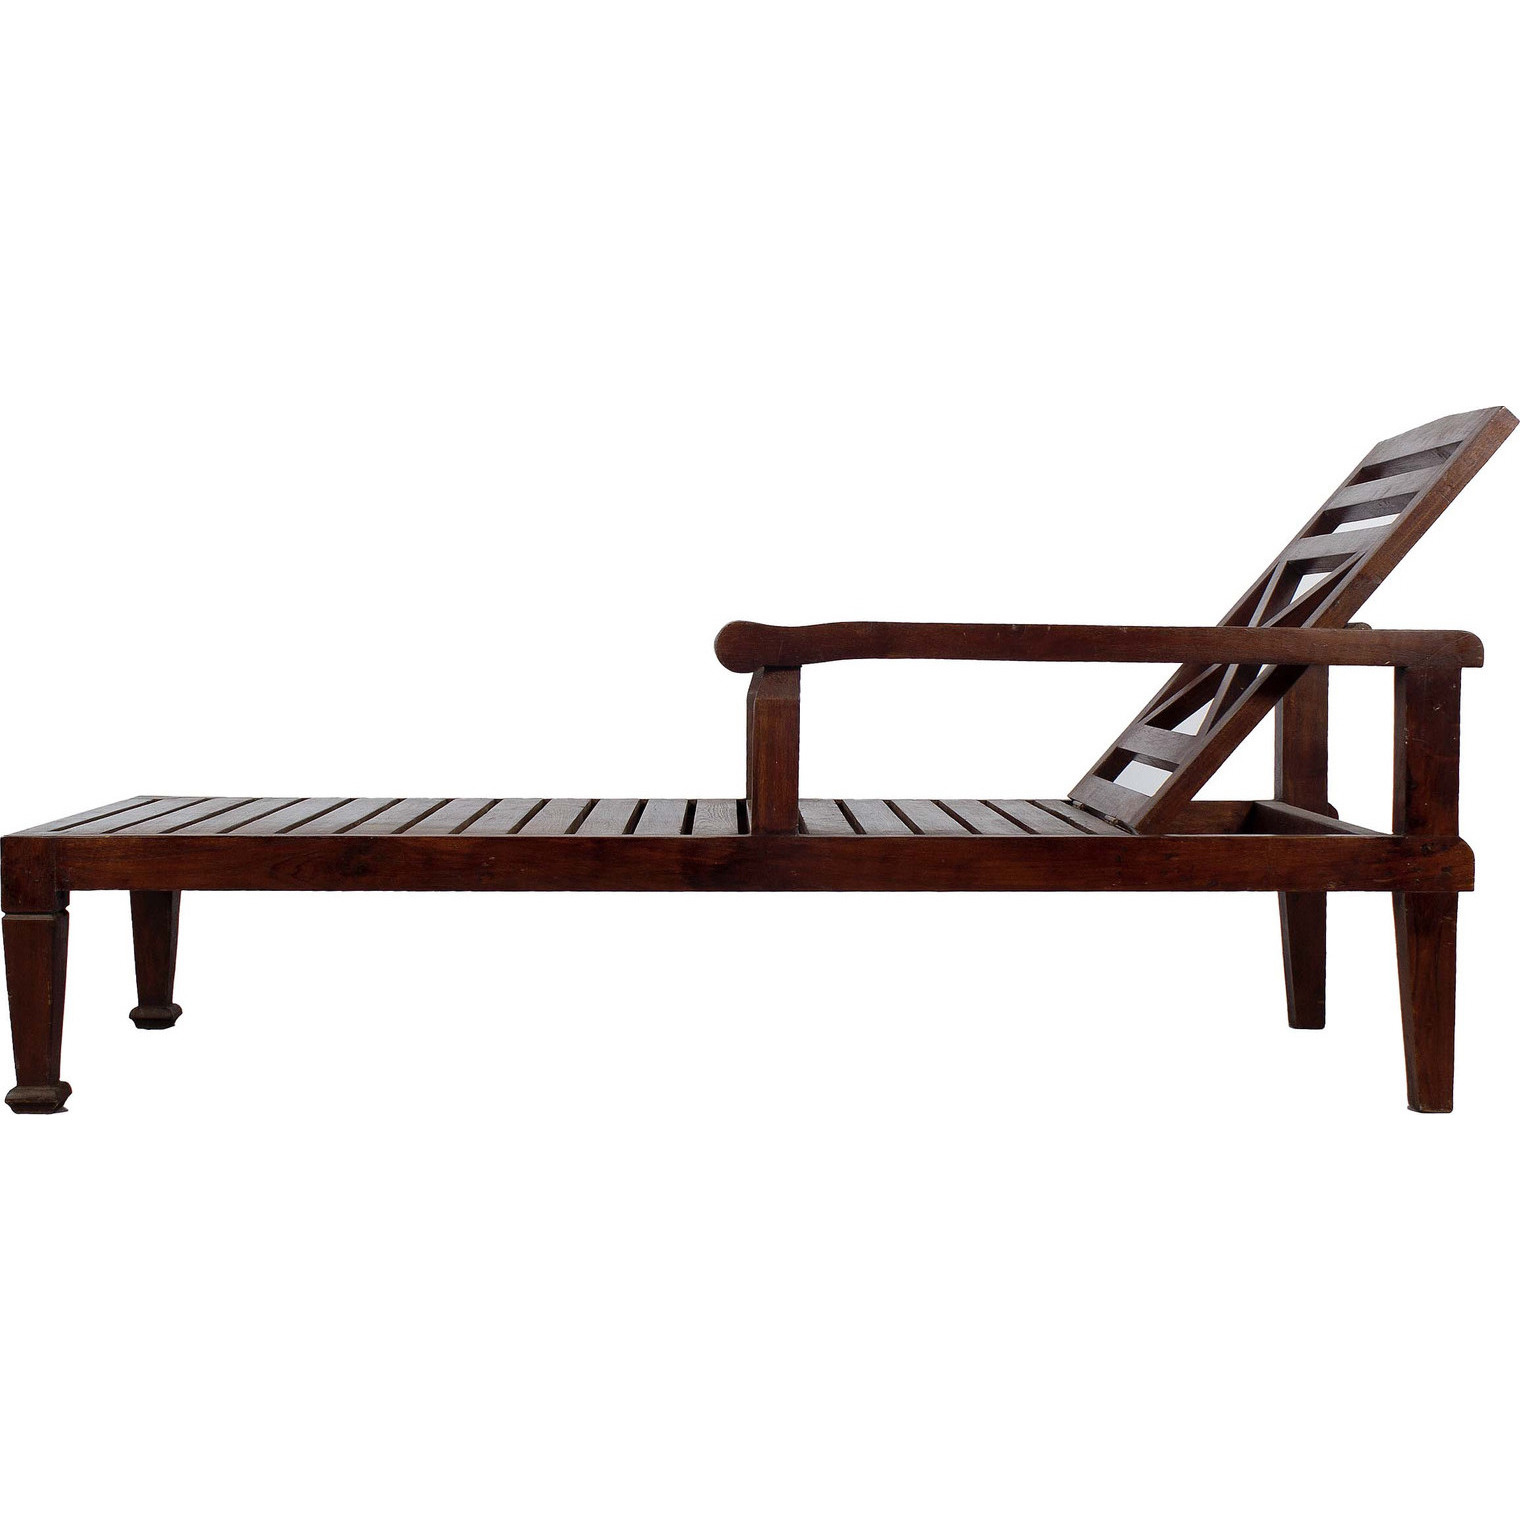 Buy online solid teak wood beach chaise lounge chairb for Beach chaise longue